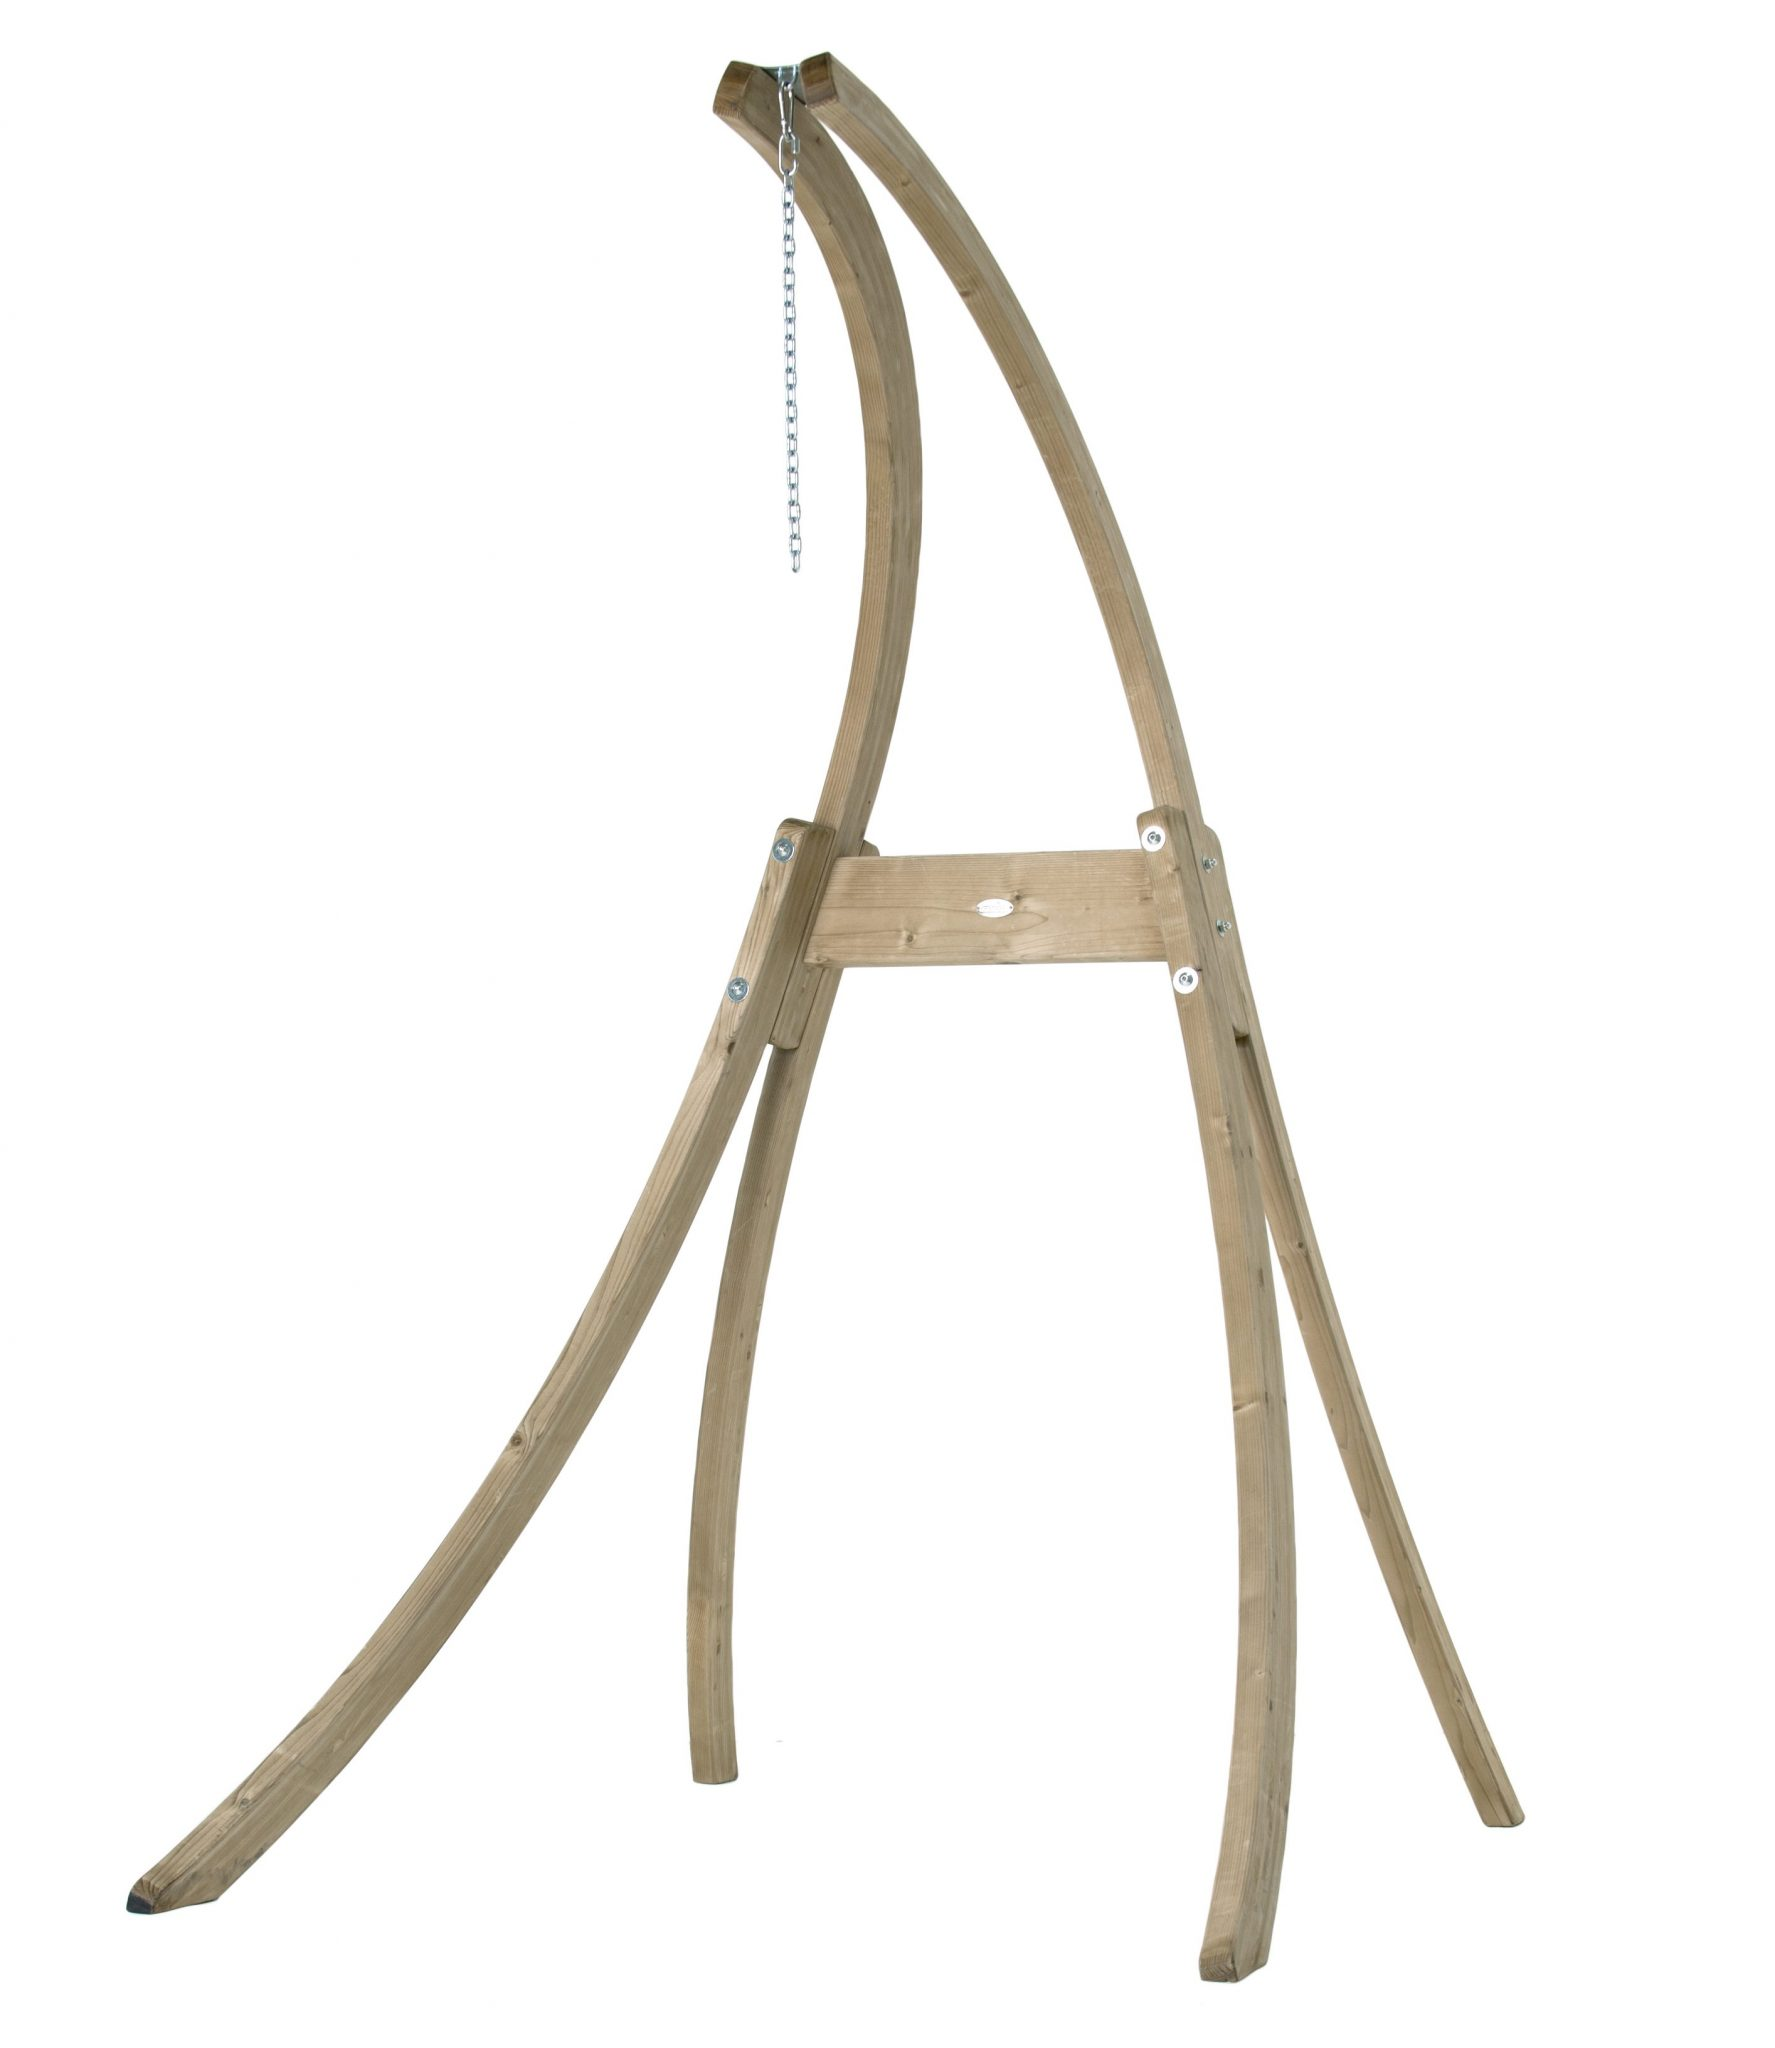 chair stands on evac 600h review the best hammock cheap wooden swing stand